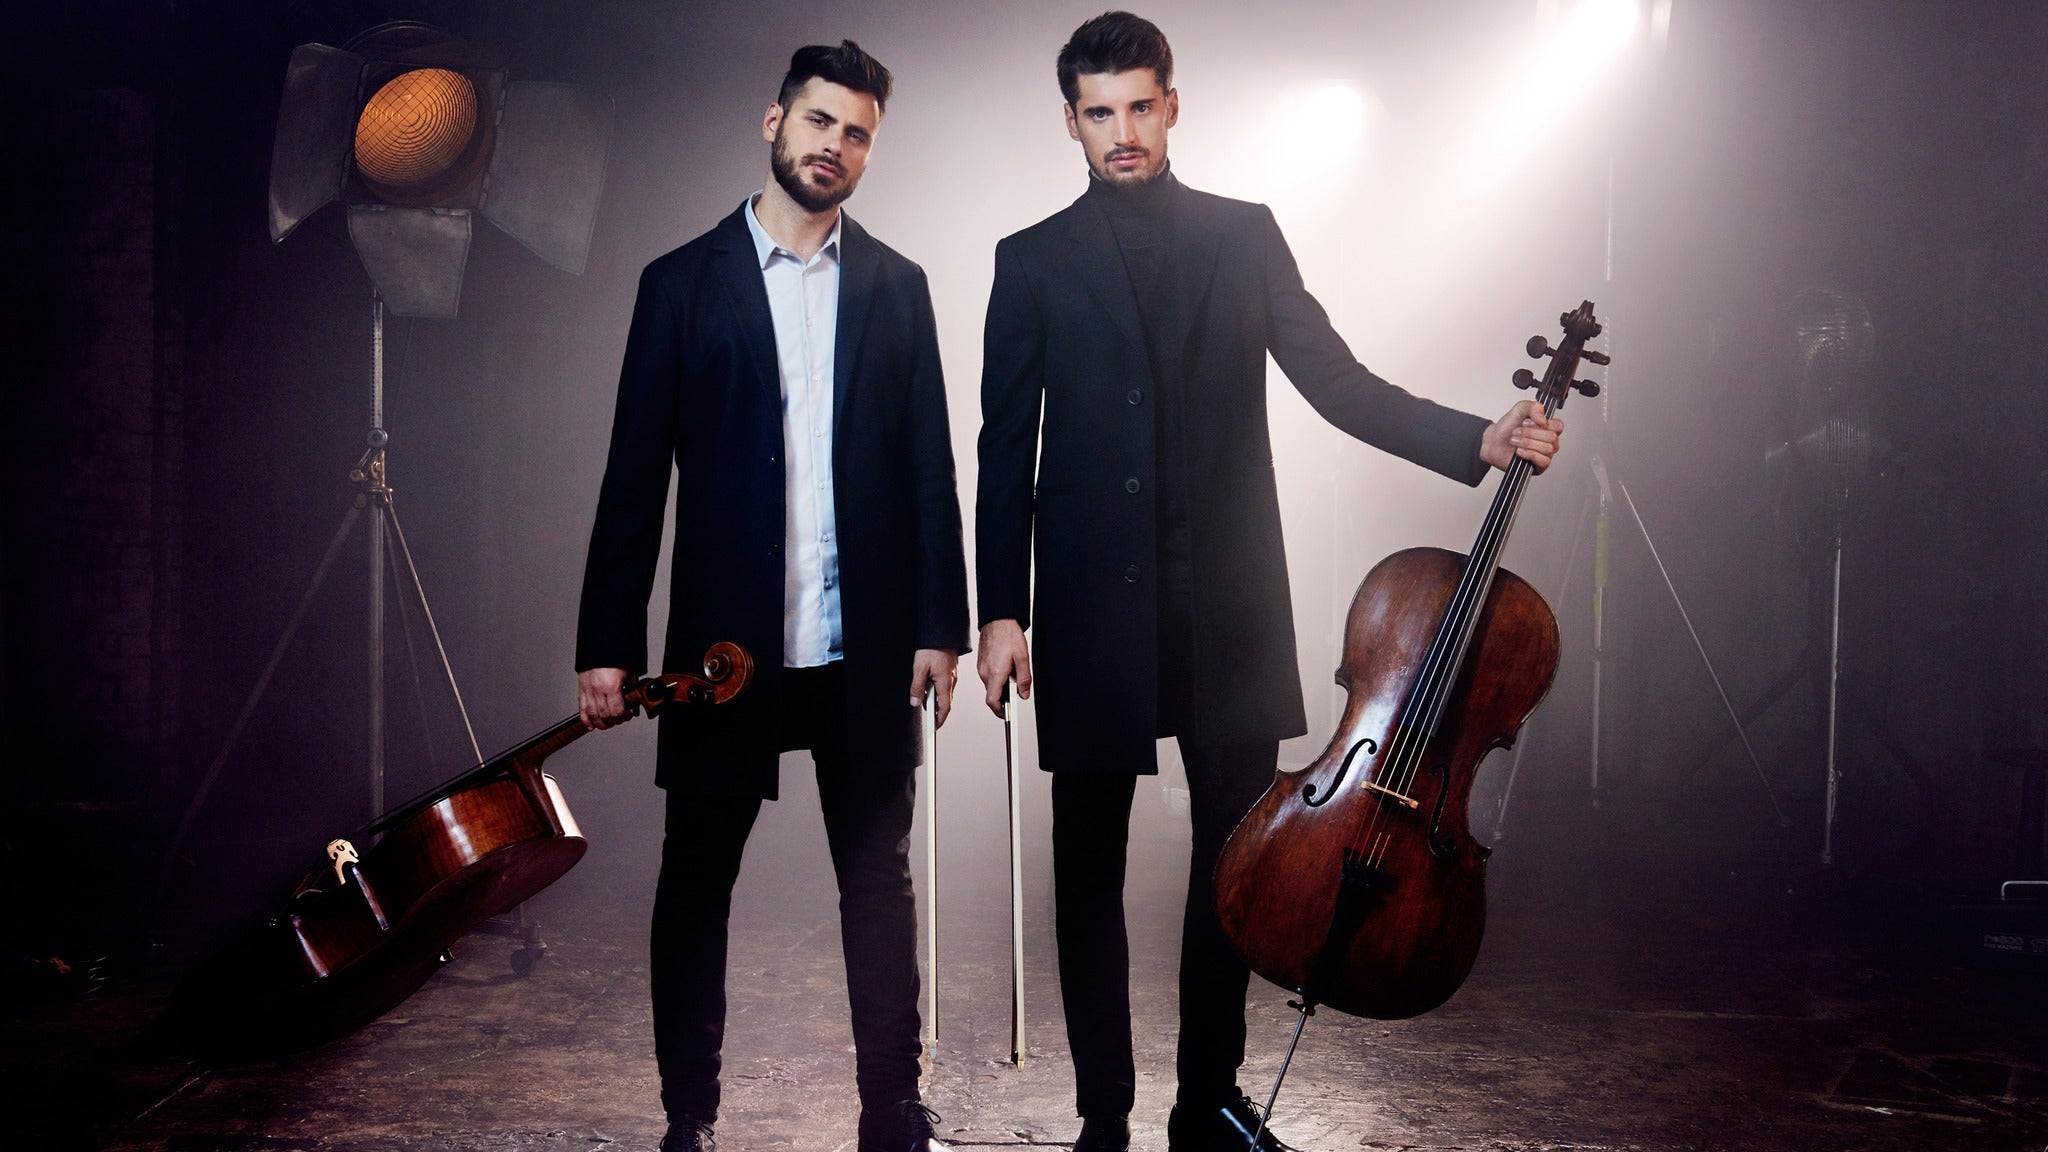 2Cellos at Grand Ole Opry House